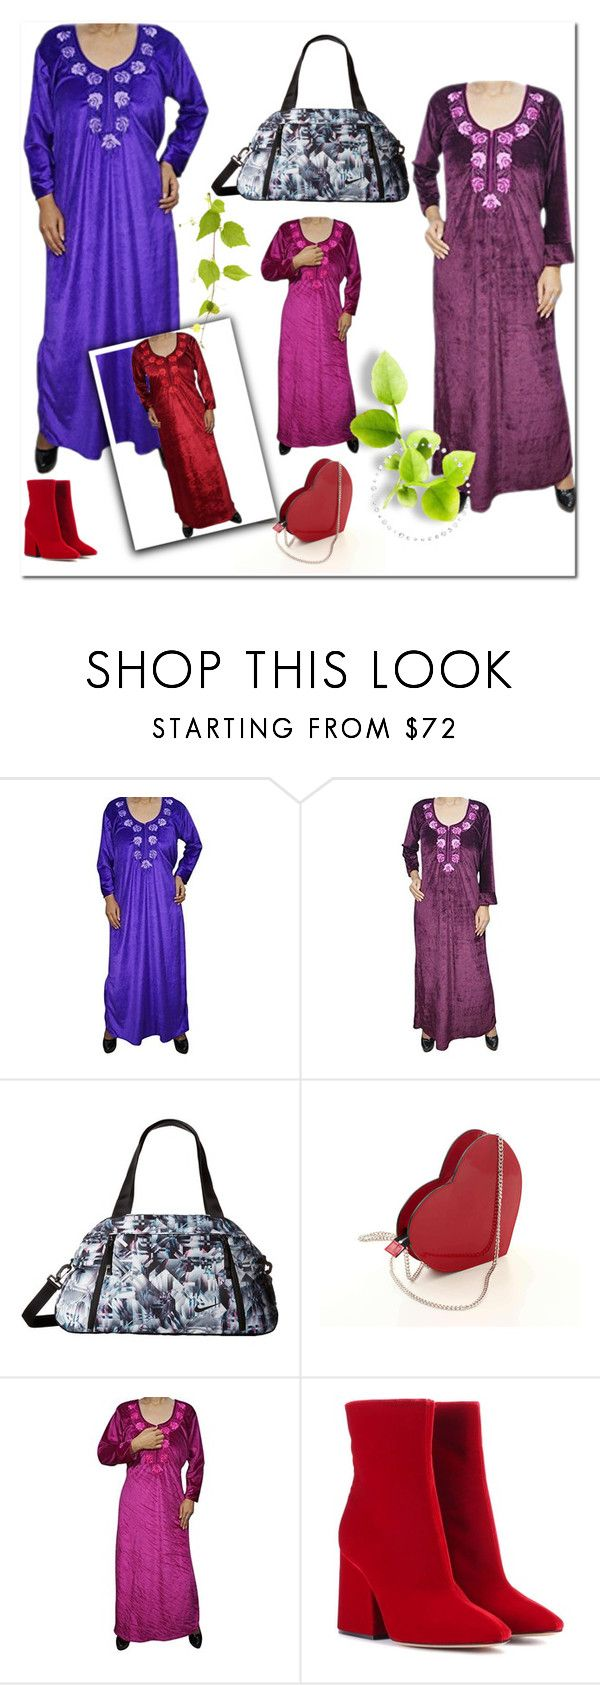 """Velvet Nightwear"" by lavanyas-trendzs ❤ liked on Polyvore featuring NIKE, Maison Margiela, nighty, nightgown and nightdress"